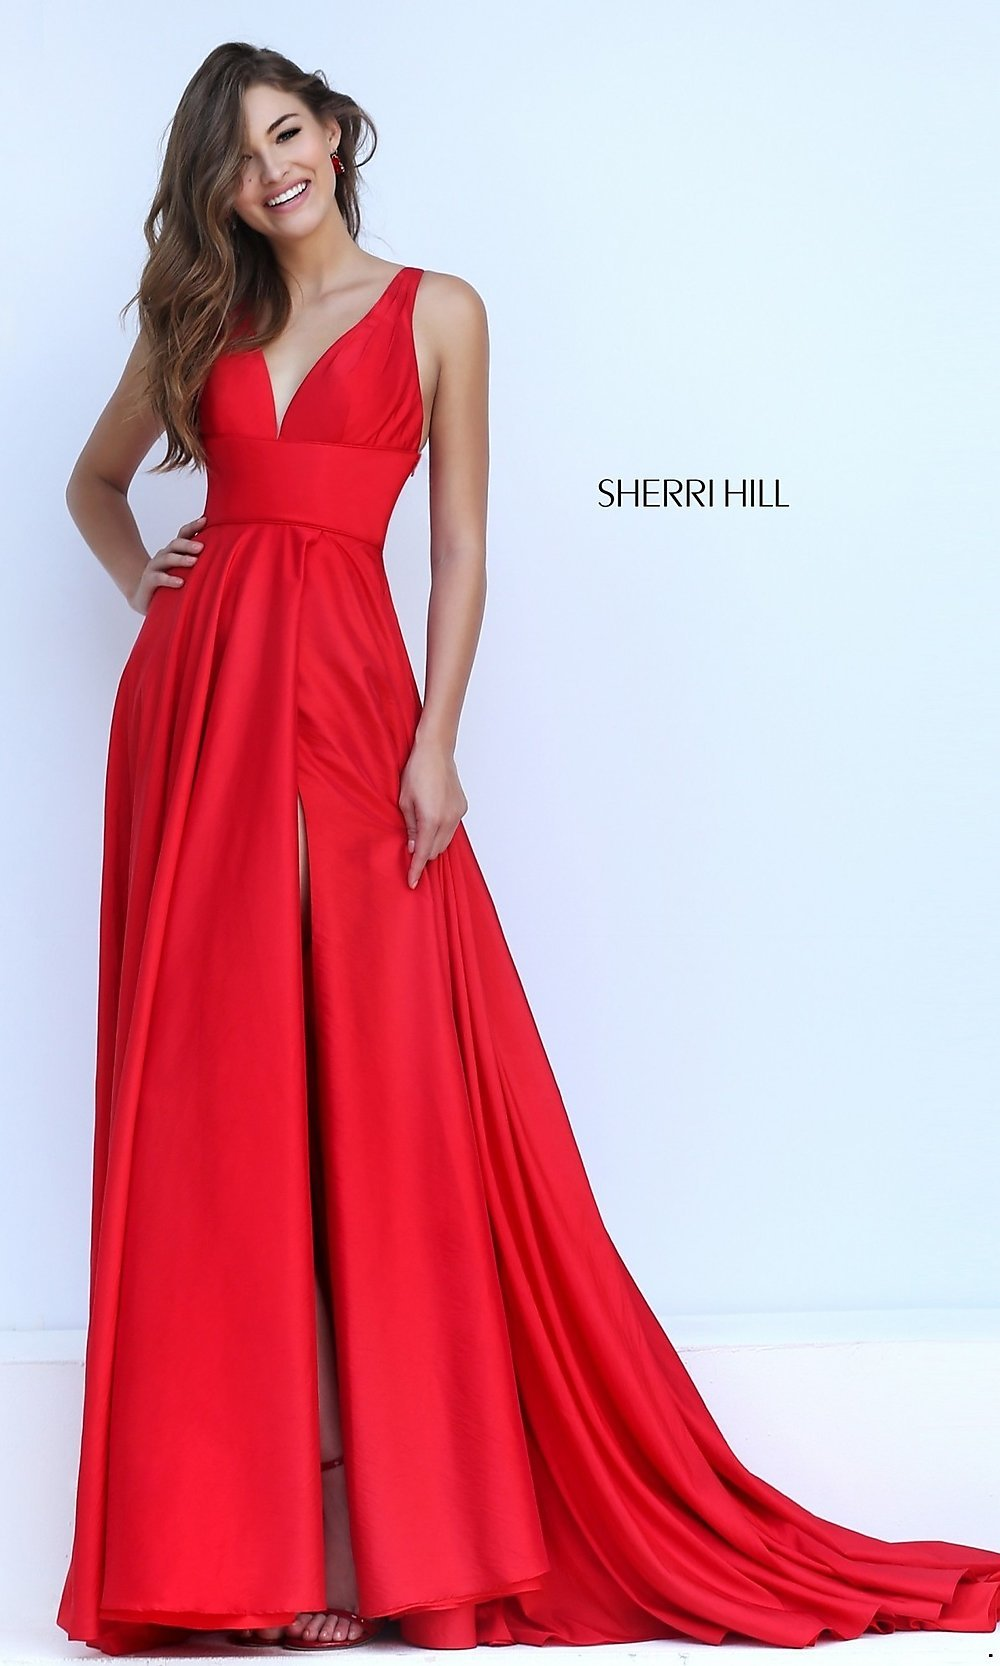 Sherri Hill Prom Dress Red and White